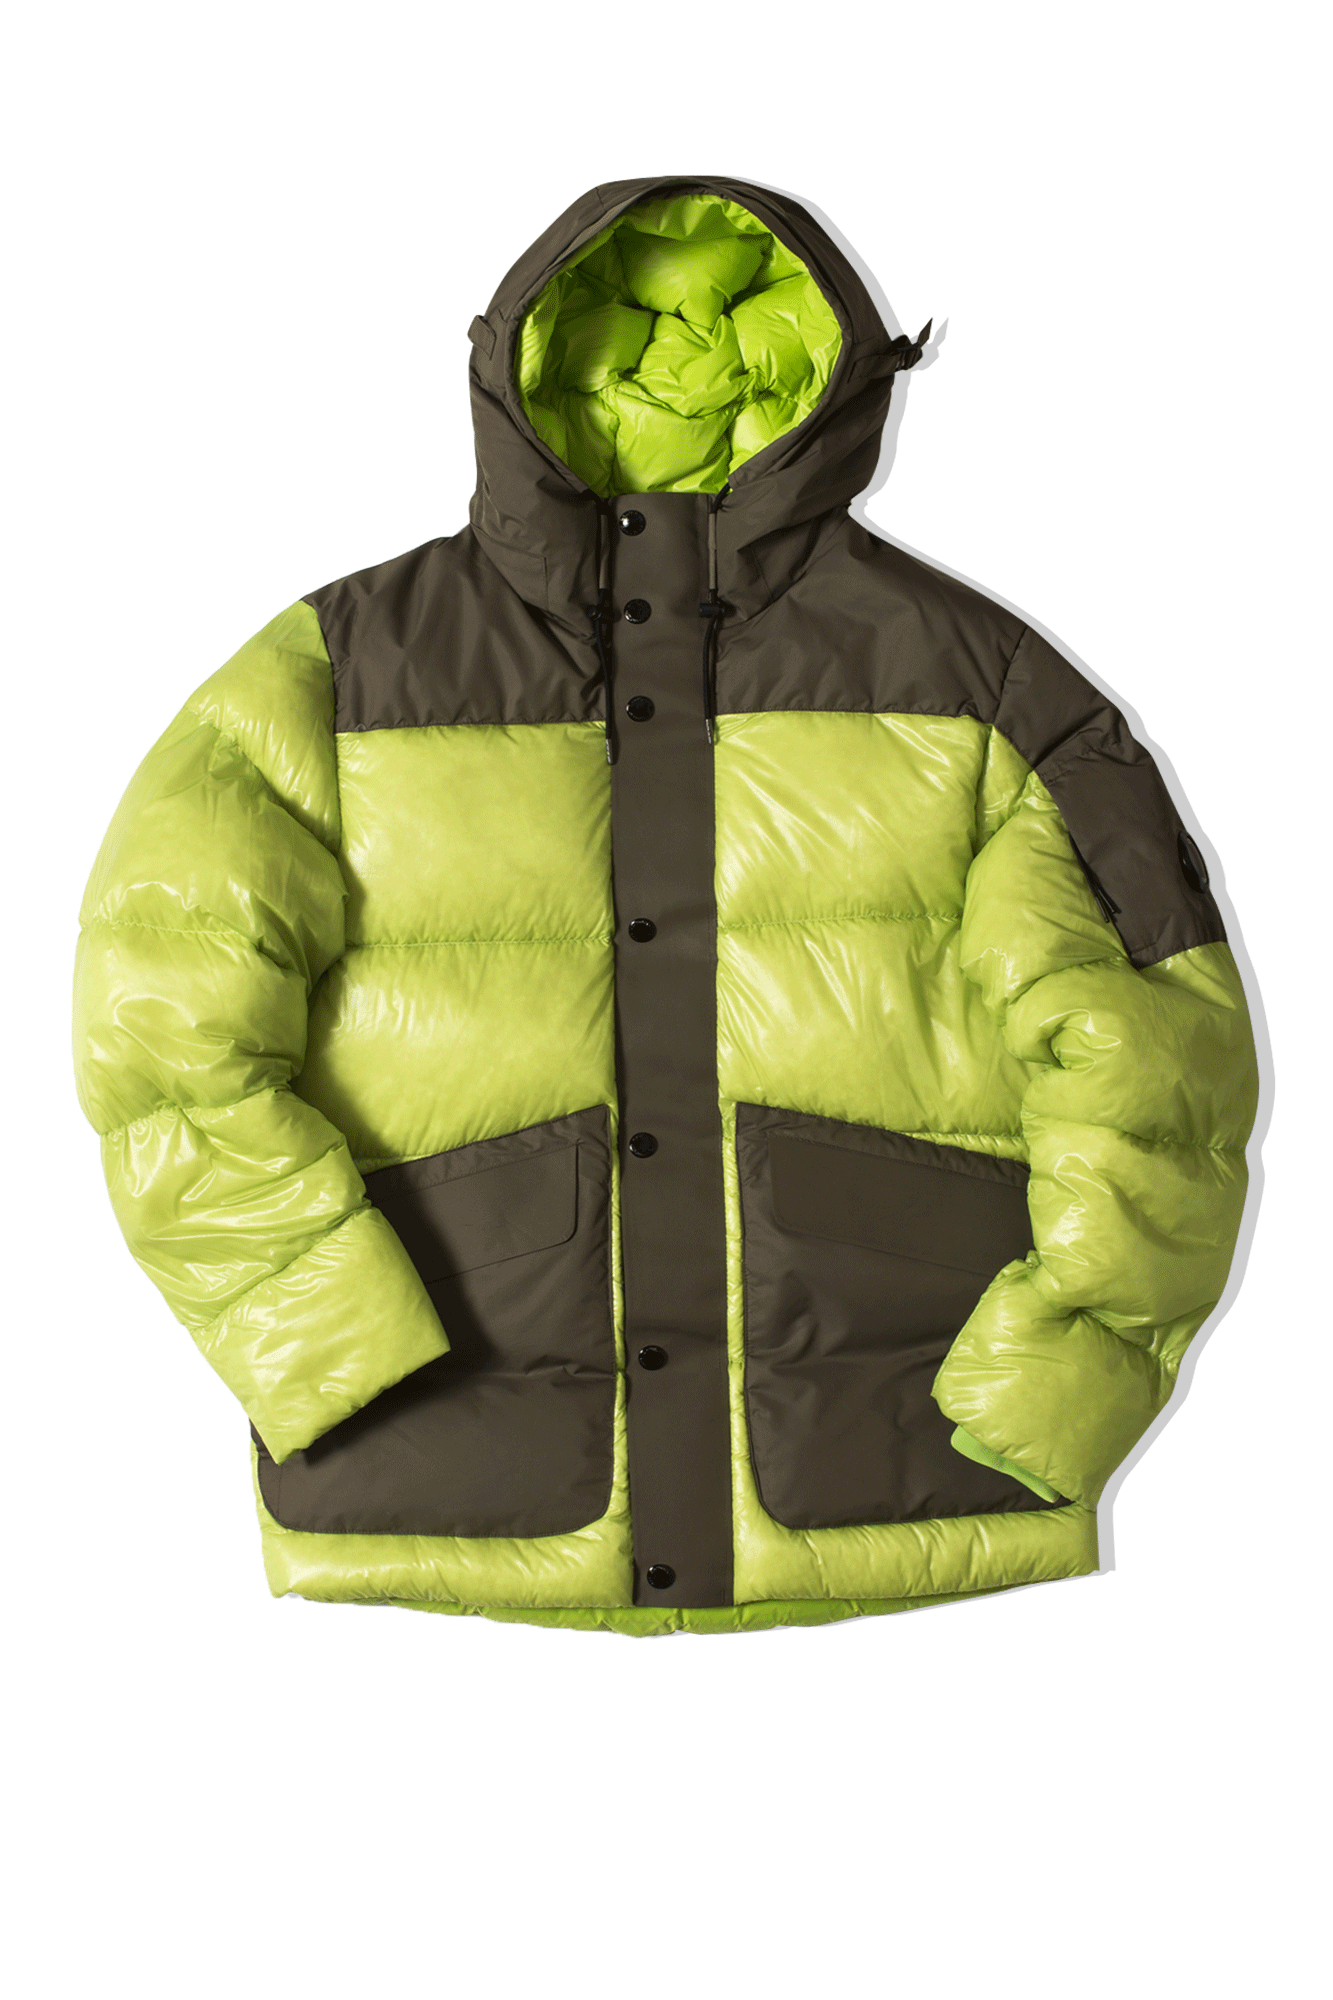 MEDIUM JACKET Green